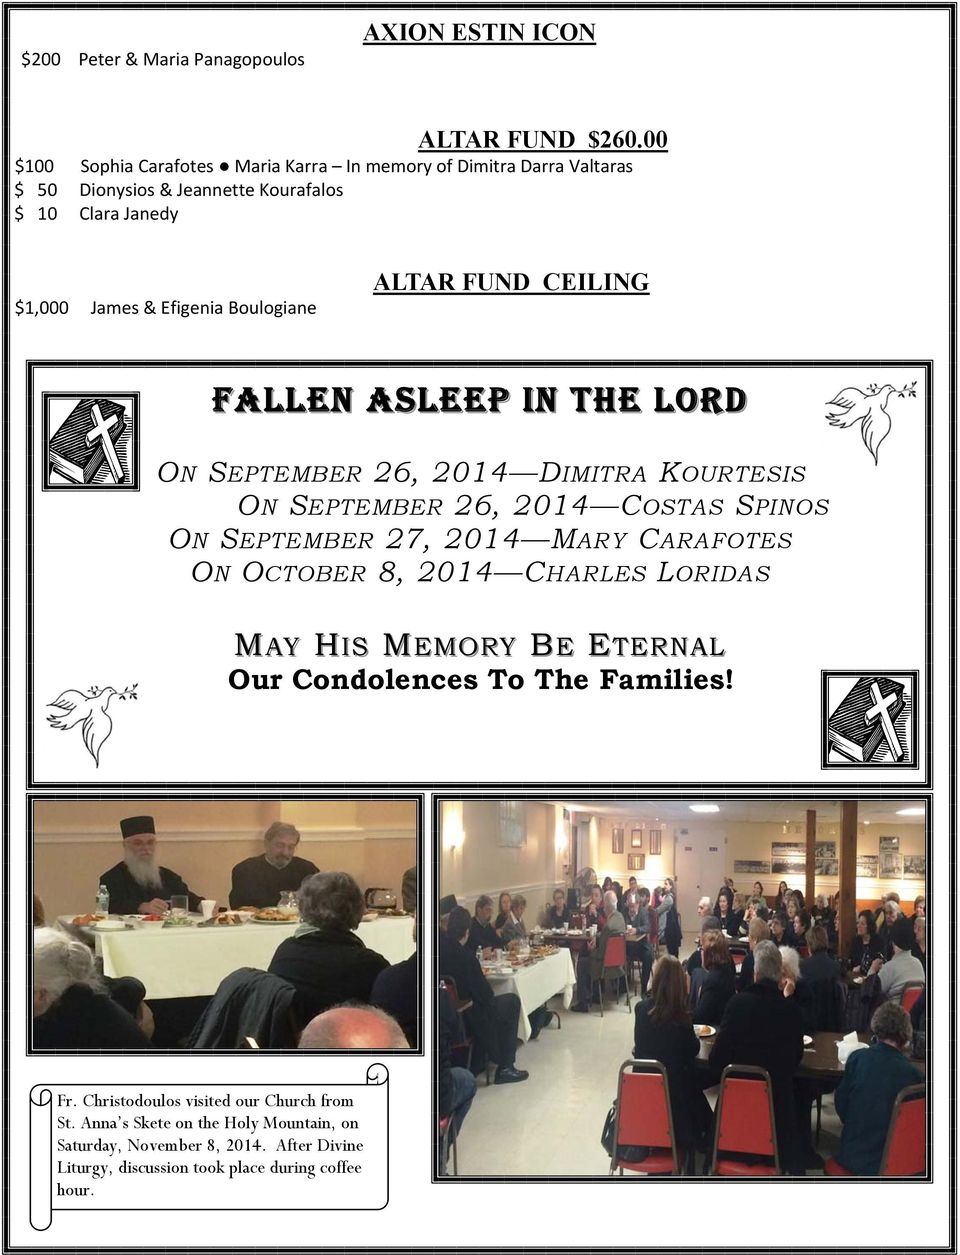 ALTAR FUND CEILING FALLEN ASLEEP IN THE LORD ON SEPTEMBER 26, 2014 DIMITRA KOURTESIS ON SEPTEMBER 26, 2014 COSTAS SPINOS ON SEPTEMBER 27, 2014 MARY CARAFOTES ON